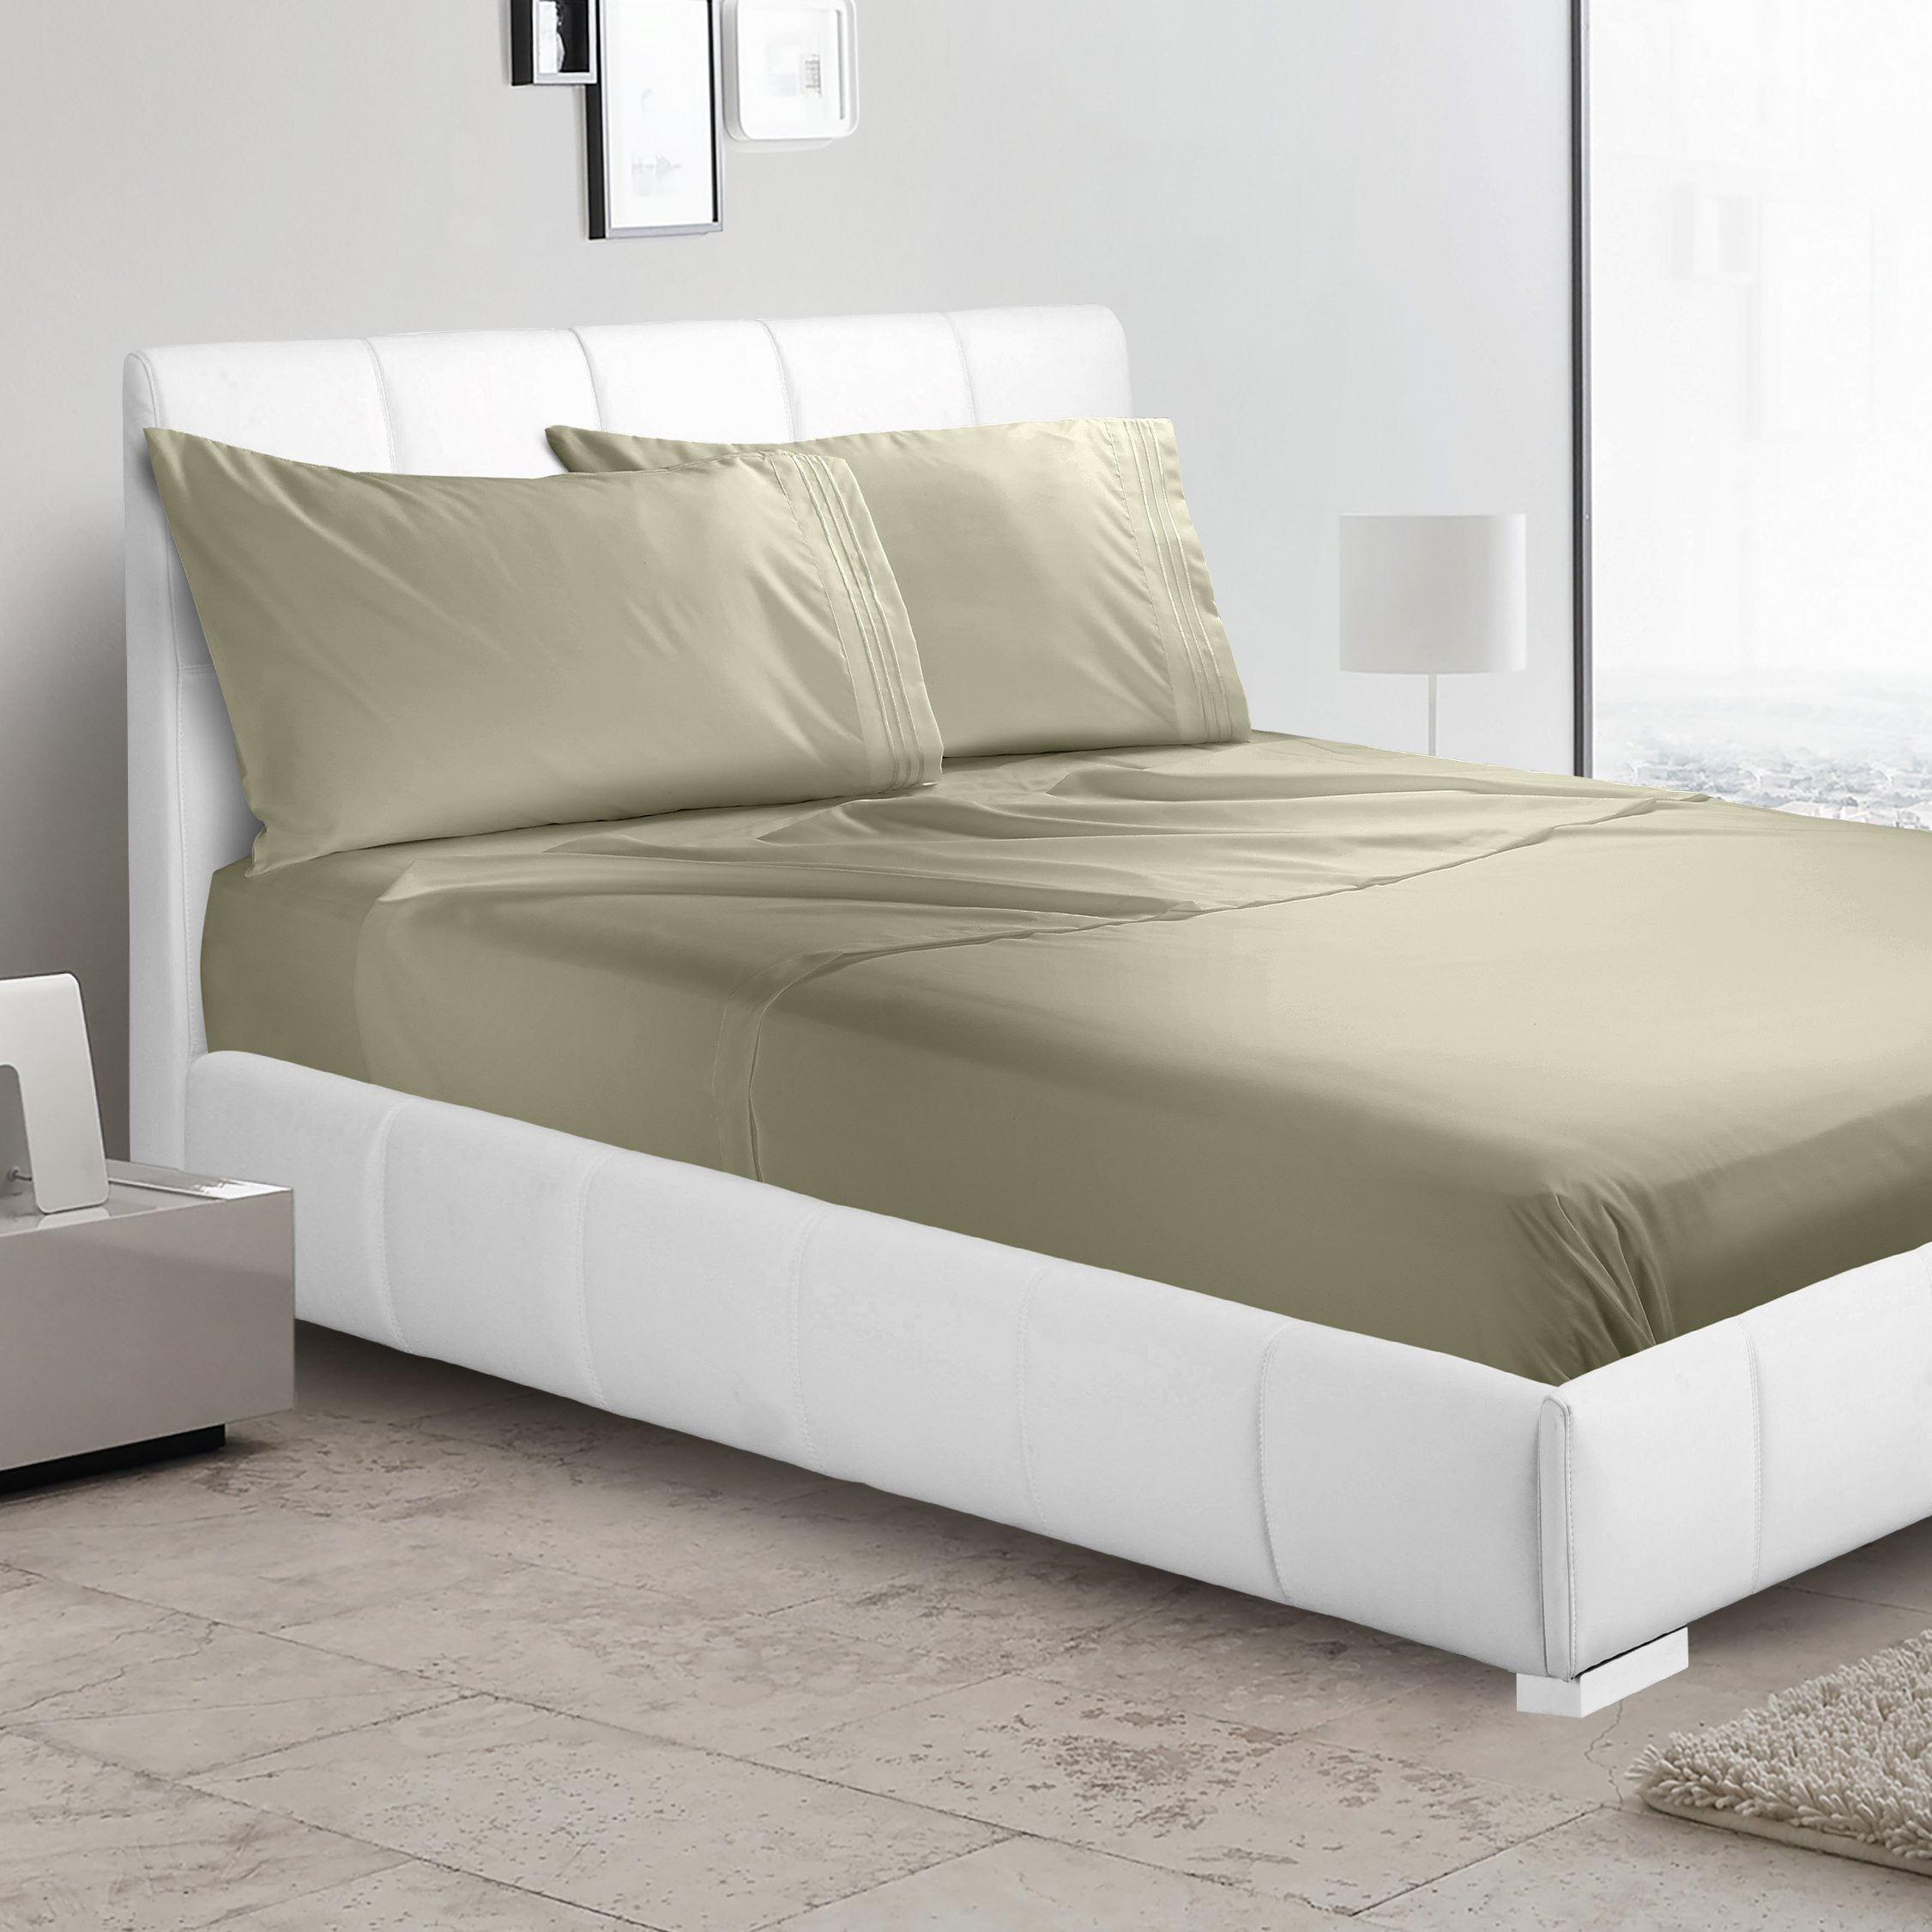 Luxury Flat Sheet by Nestl Bedding - Premium Quality Silky Soft Hypoallergenic Microfiber - Wrinkle, Fade & Stain Resistant Bed Sheet - King, Sage Olive Green